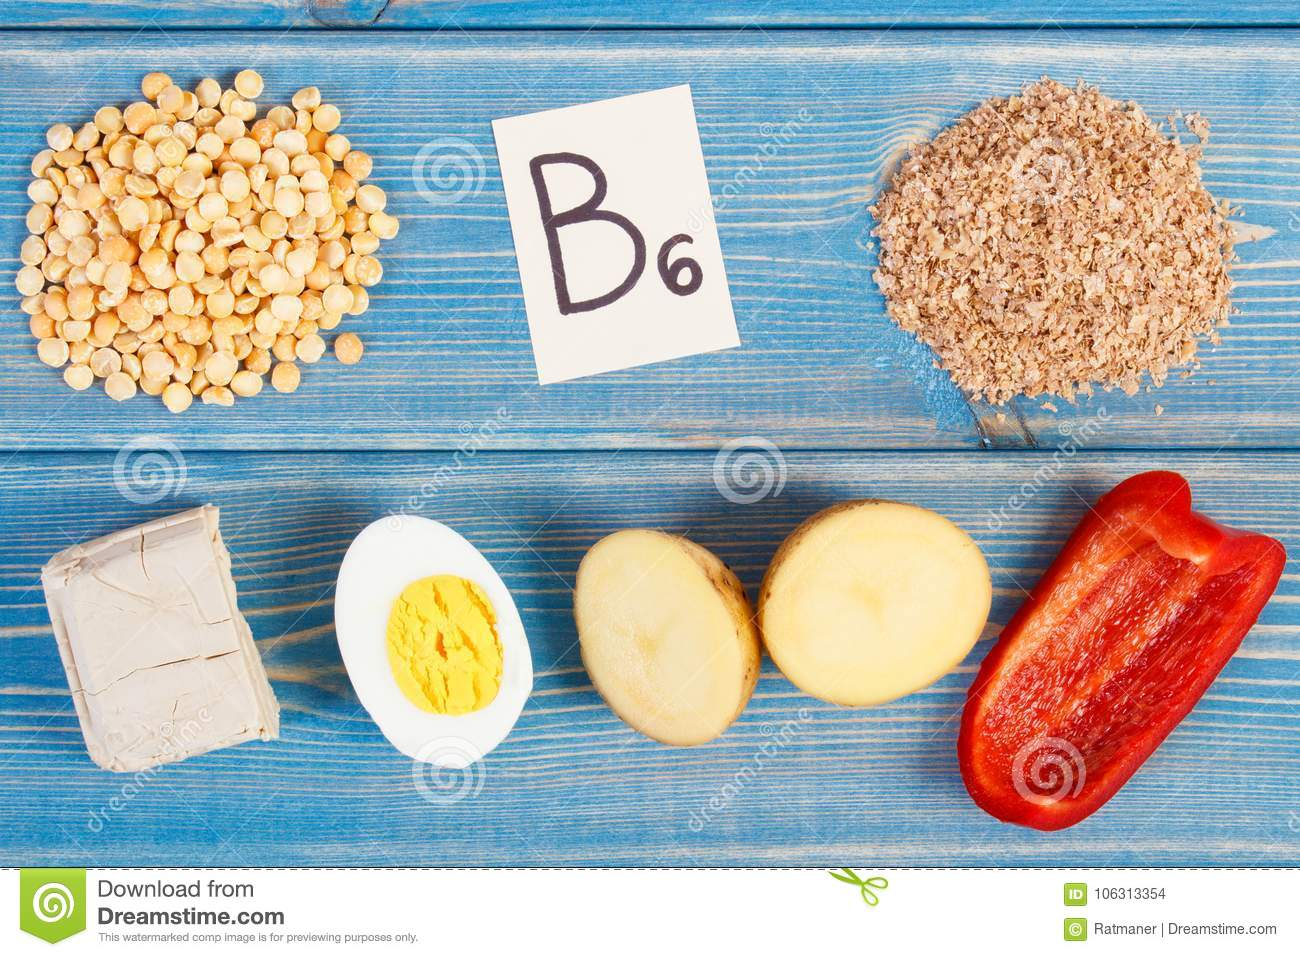 Products containing vitamin B6 and dietary fiber, healthy nutrition